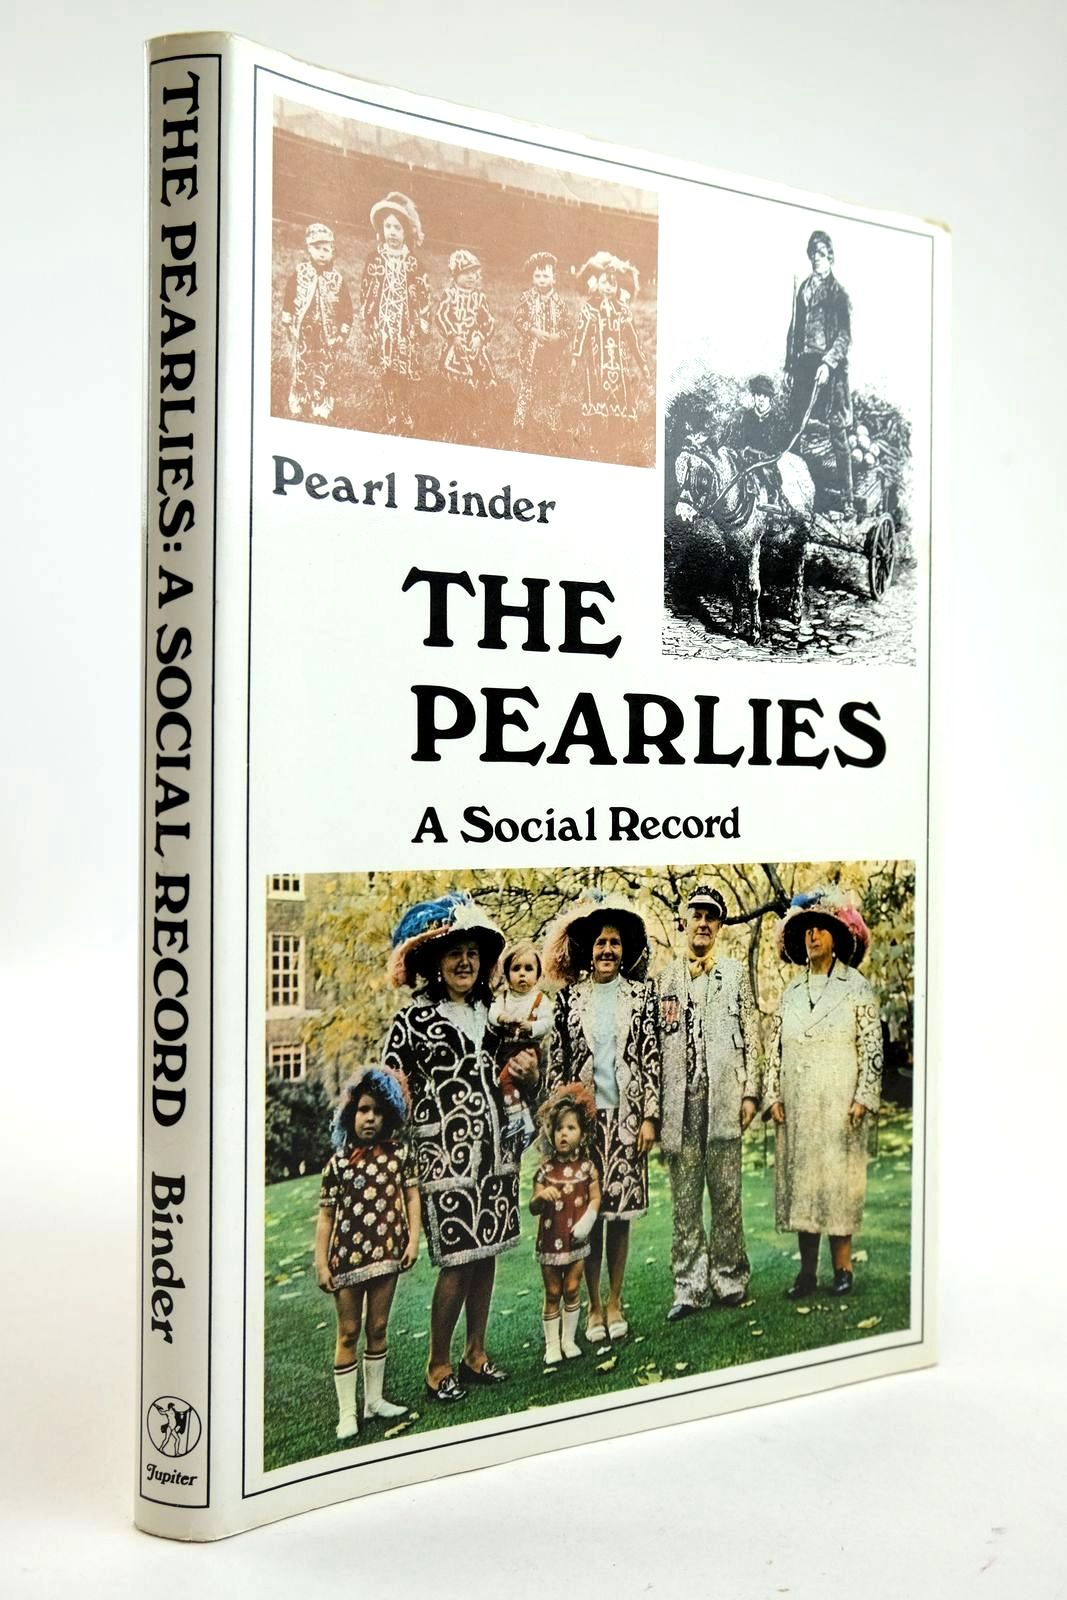 Photo of THE PEARLIES A SOCIAL RECORD written by Binder, Pearl published by Jupiter Books (STOCK CODE: 2132889)  for sale by Stella & Rose's Books